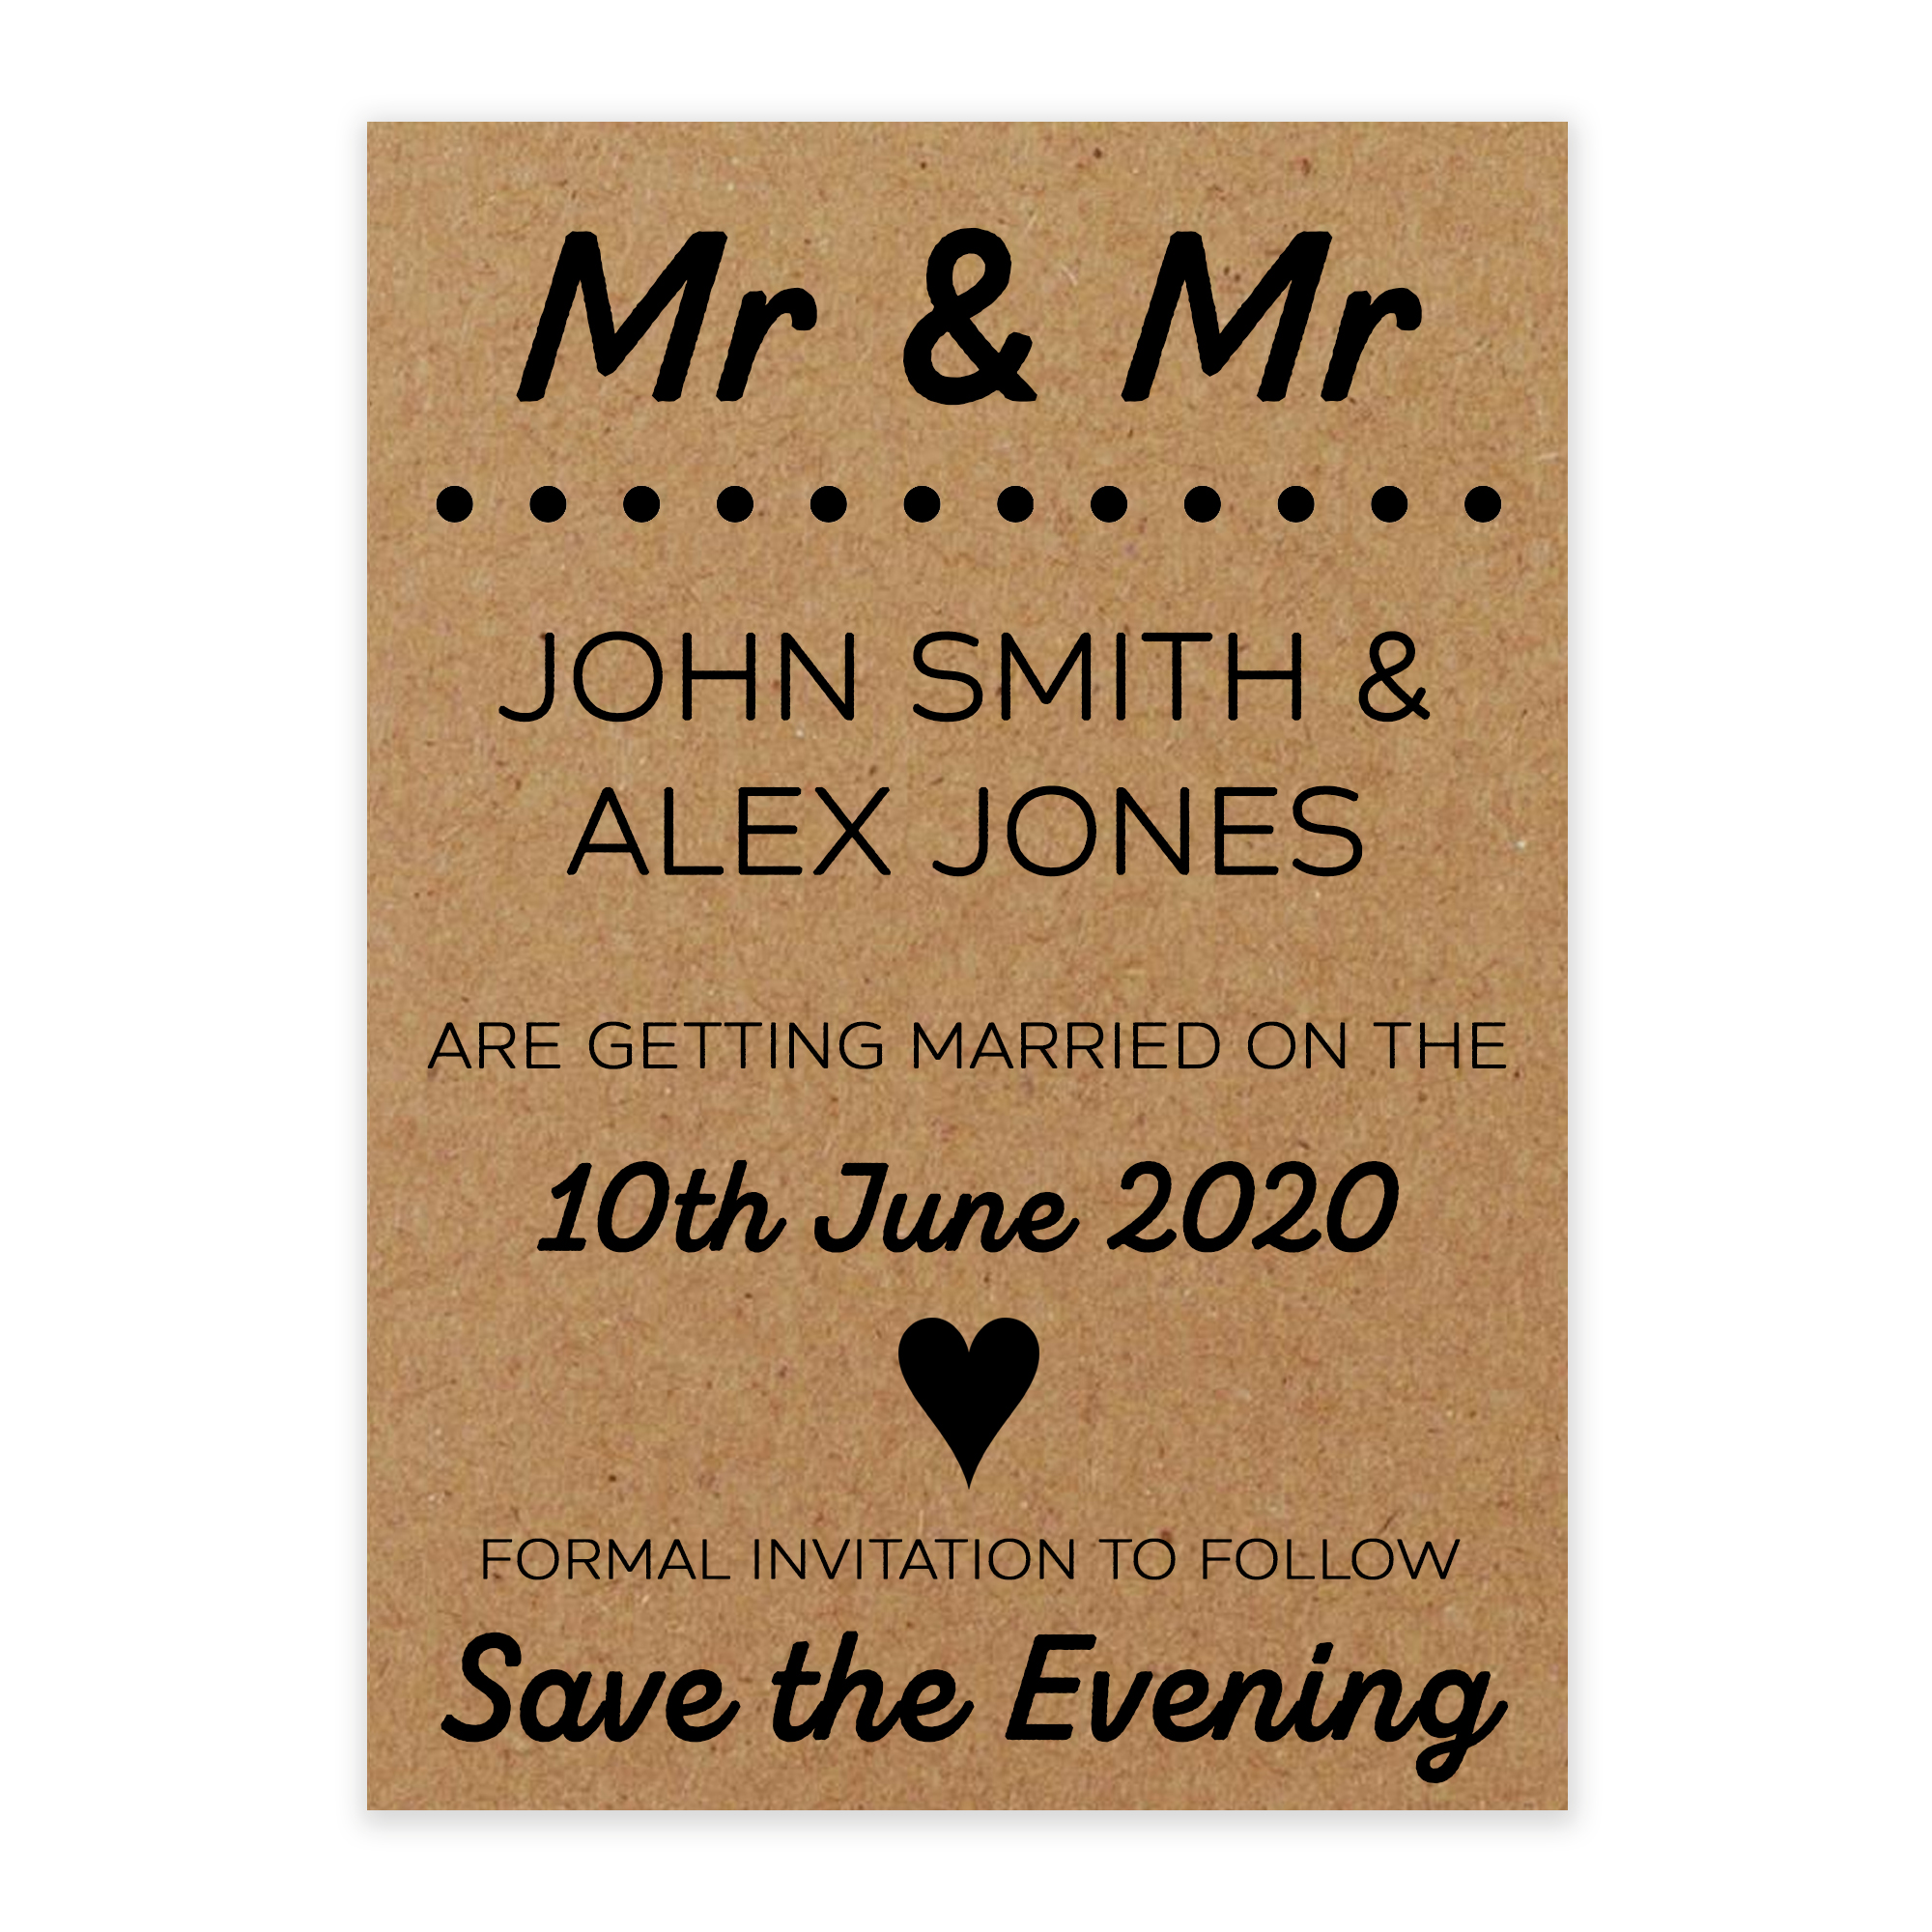 Recycled Brown Kraft Mr & Mr Save the Evening Cards